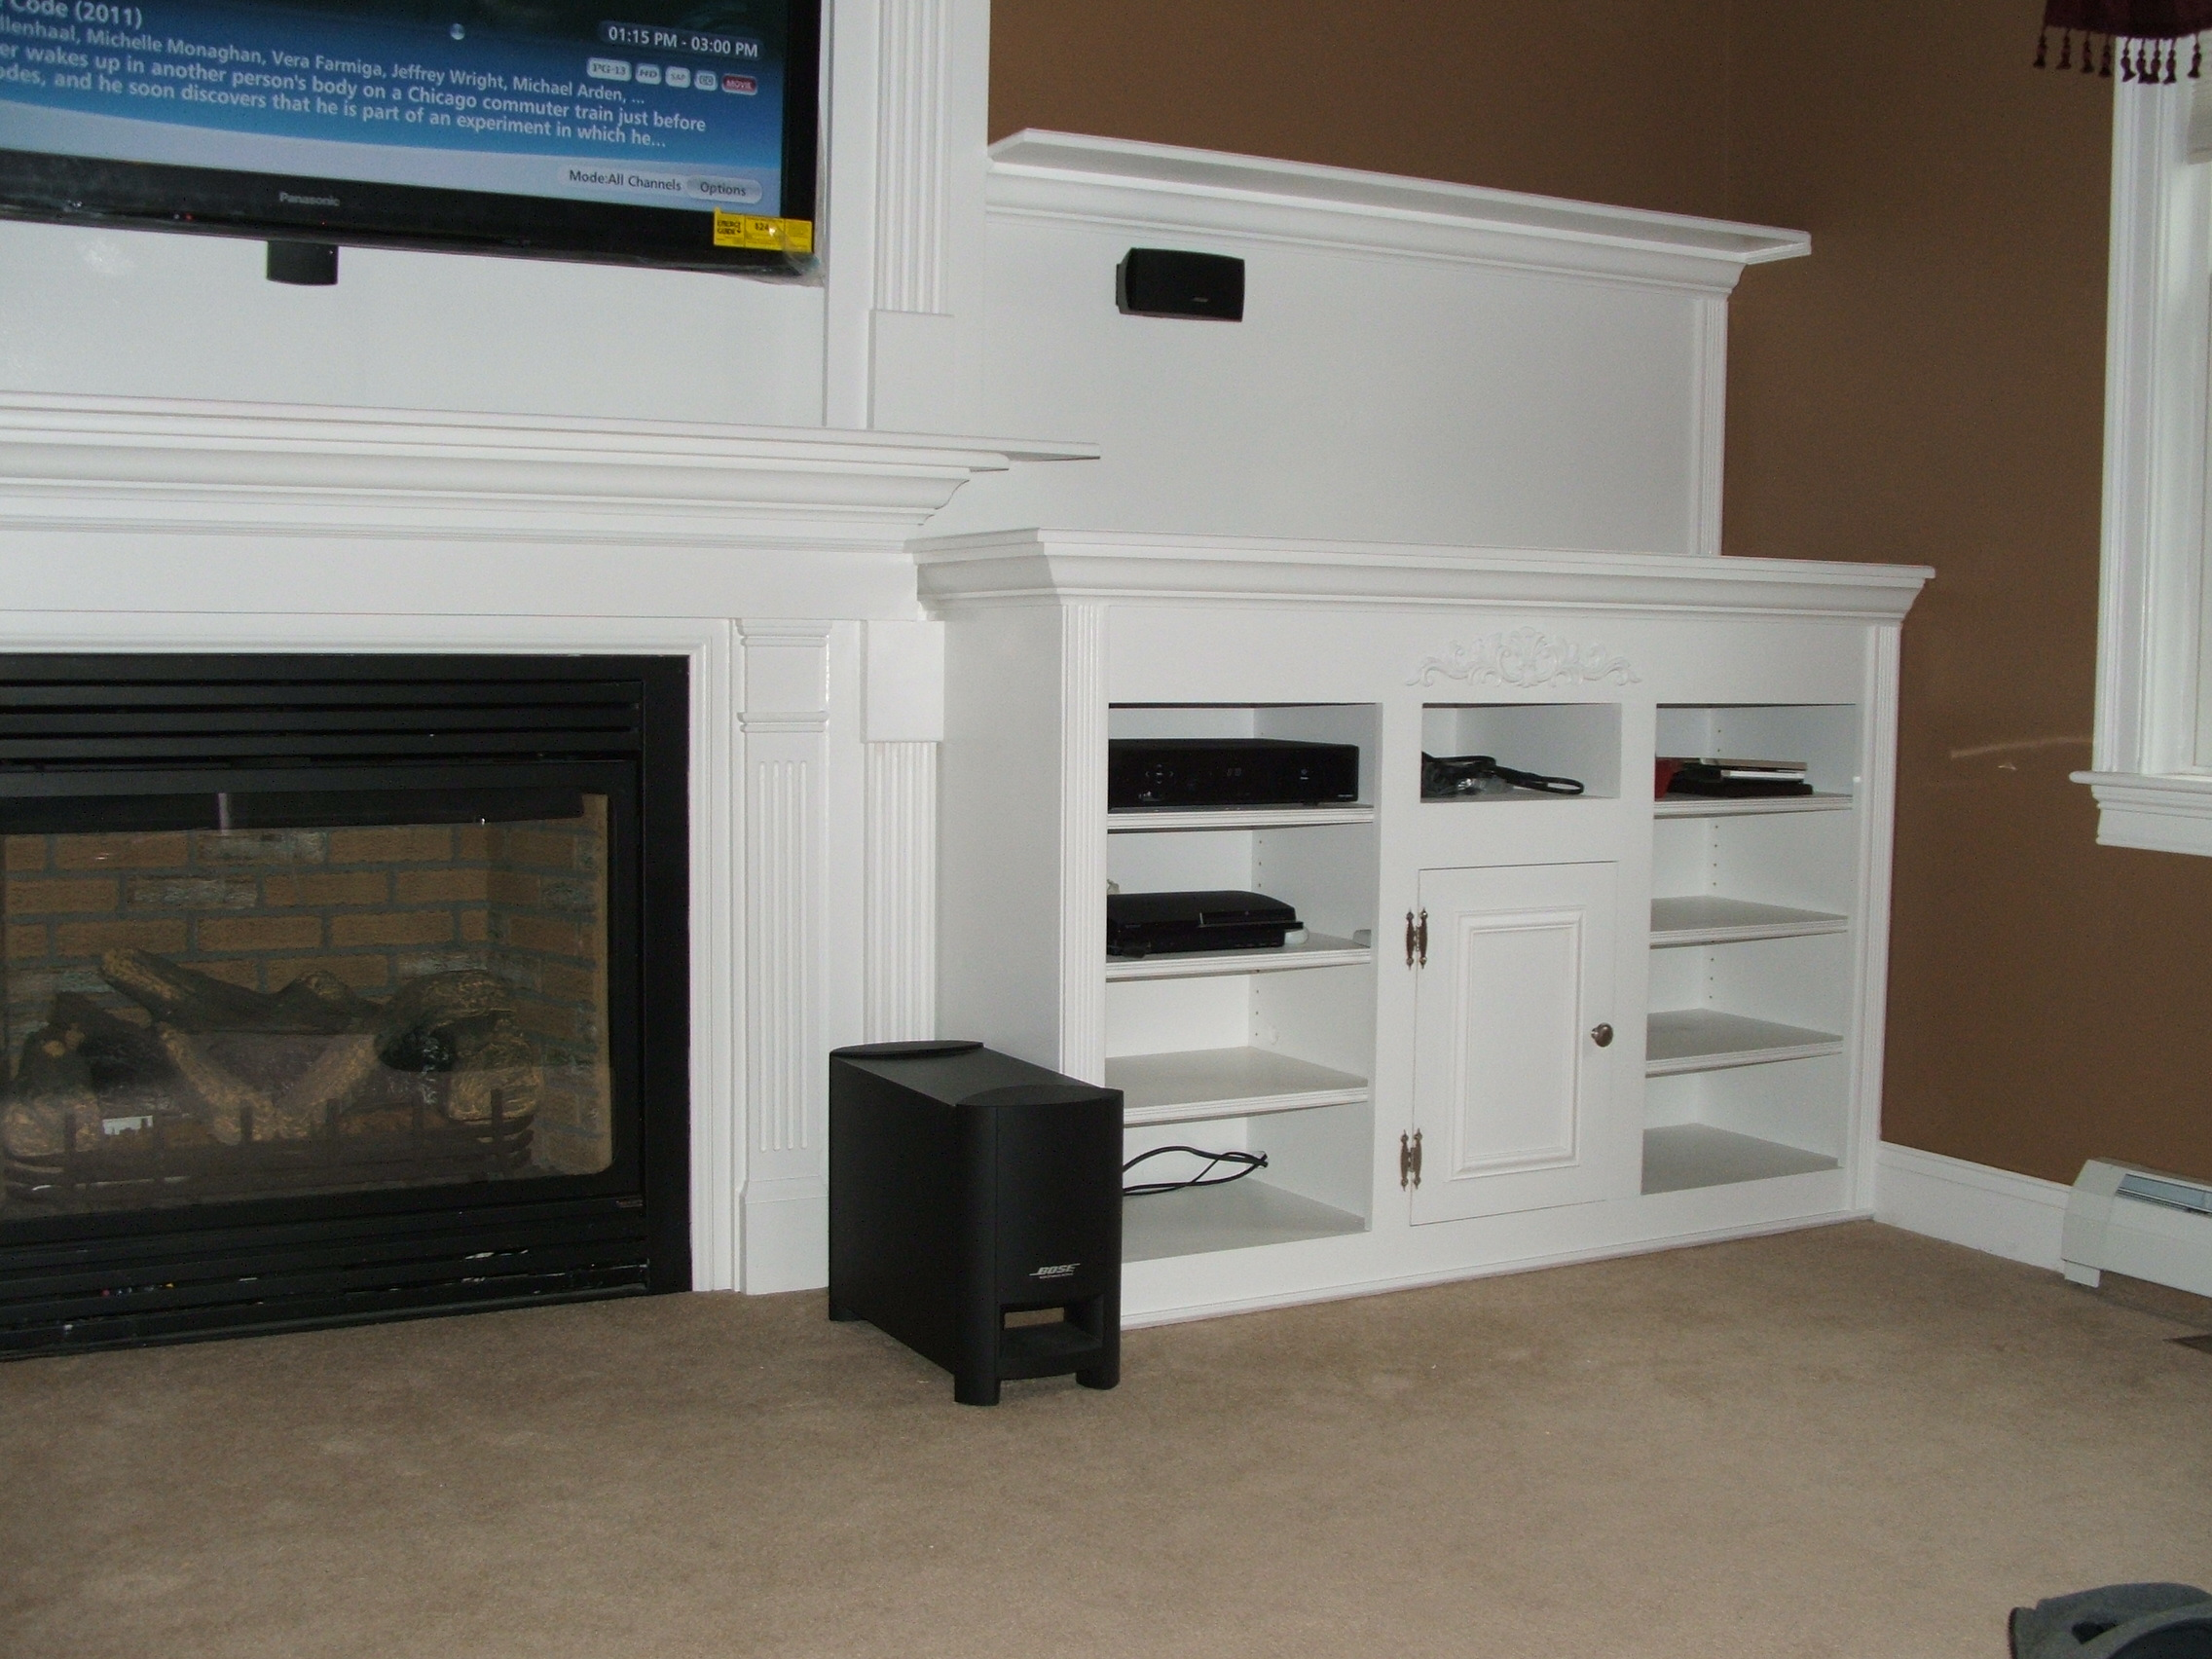 A 1 Custom Cabinets A 1 Interior Systems Photos Of Recent Jobs